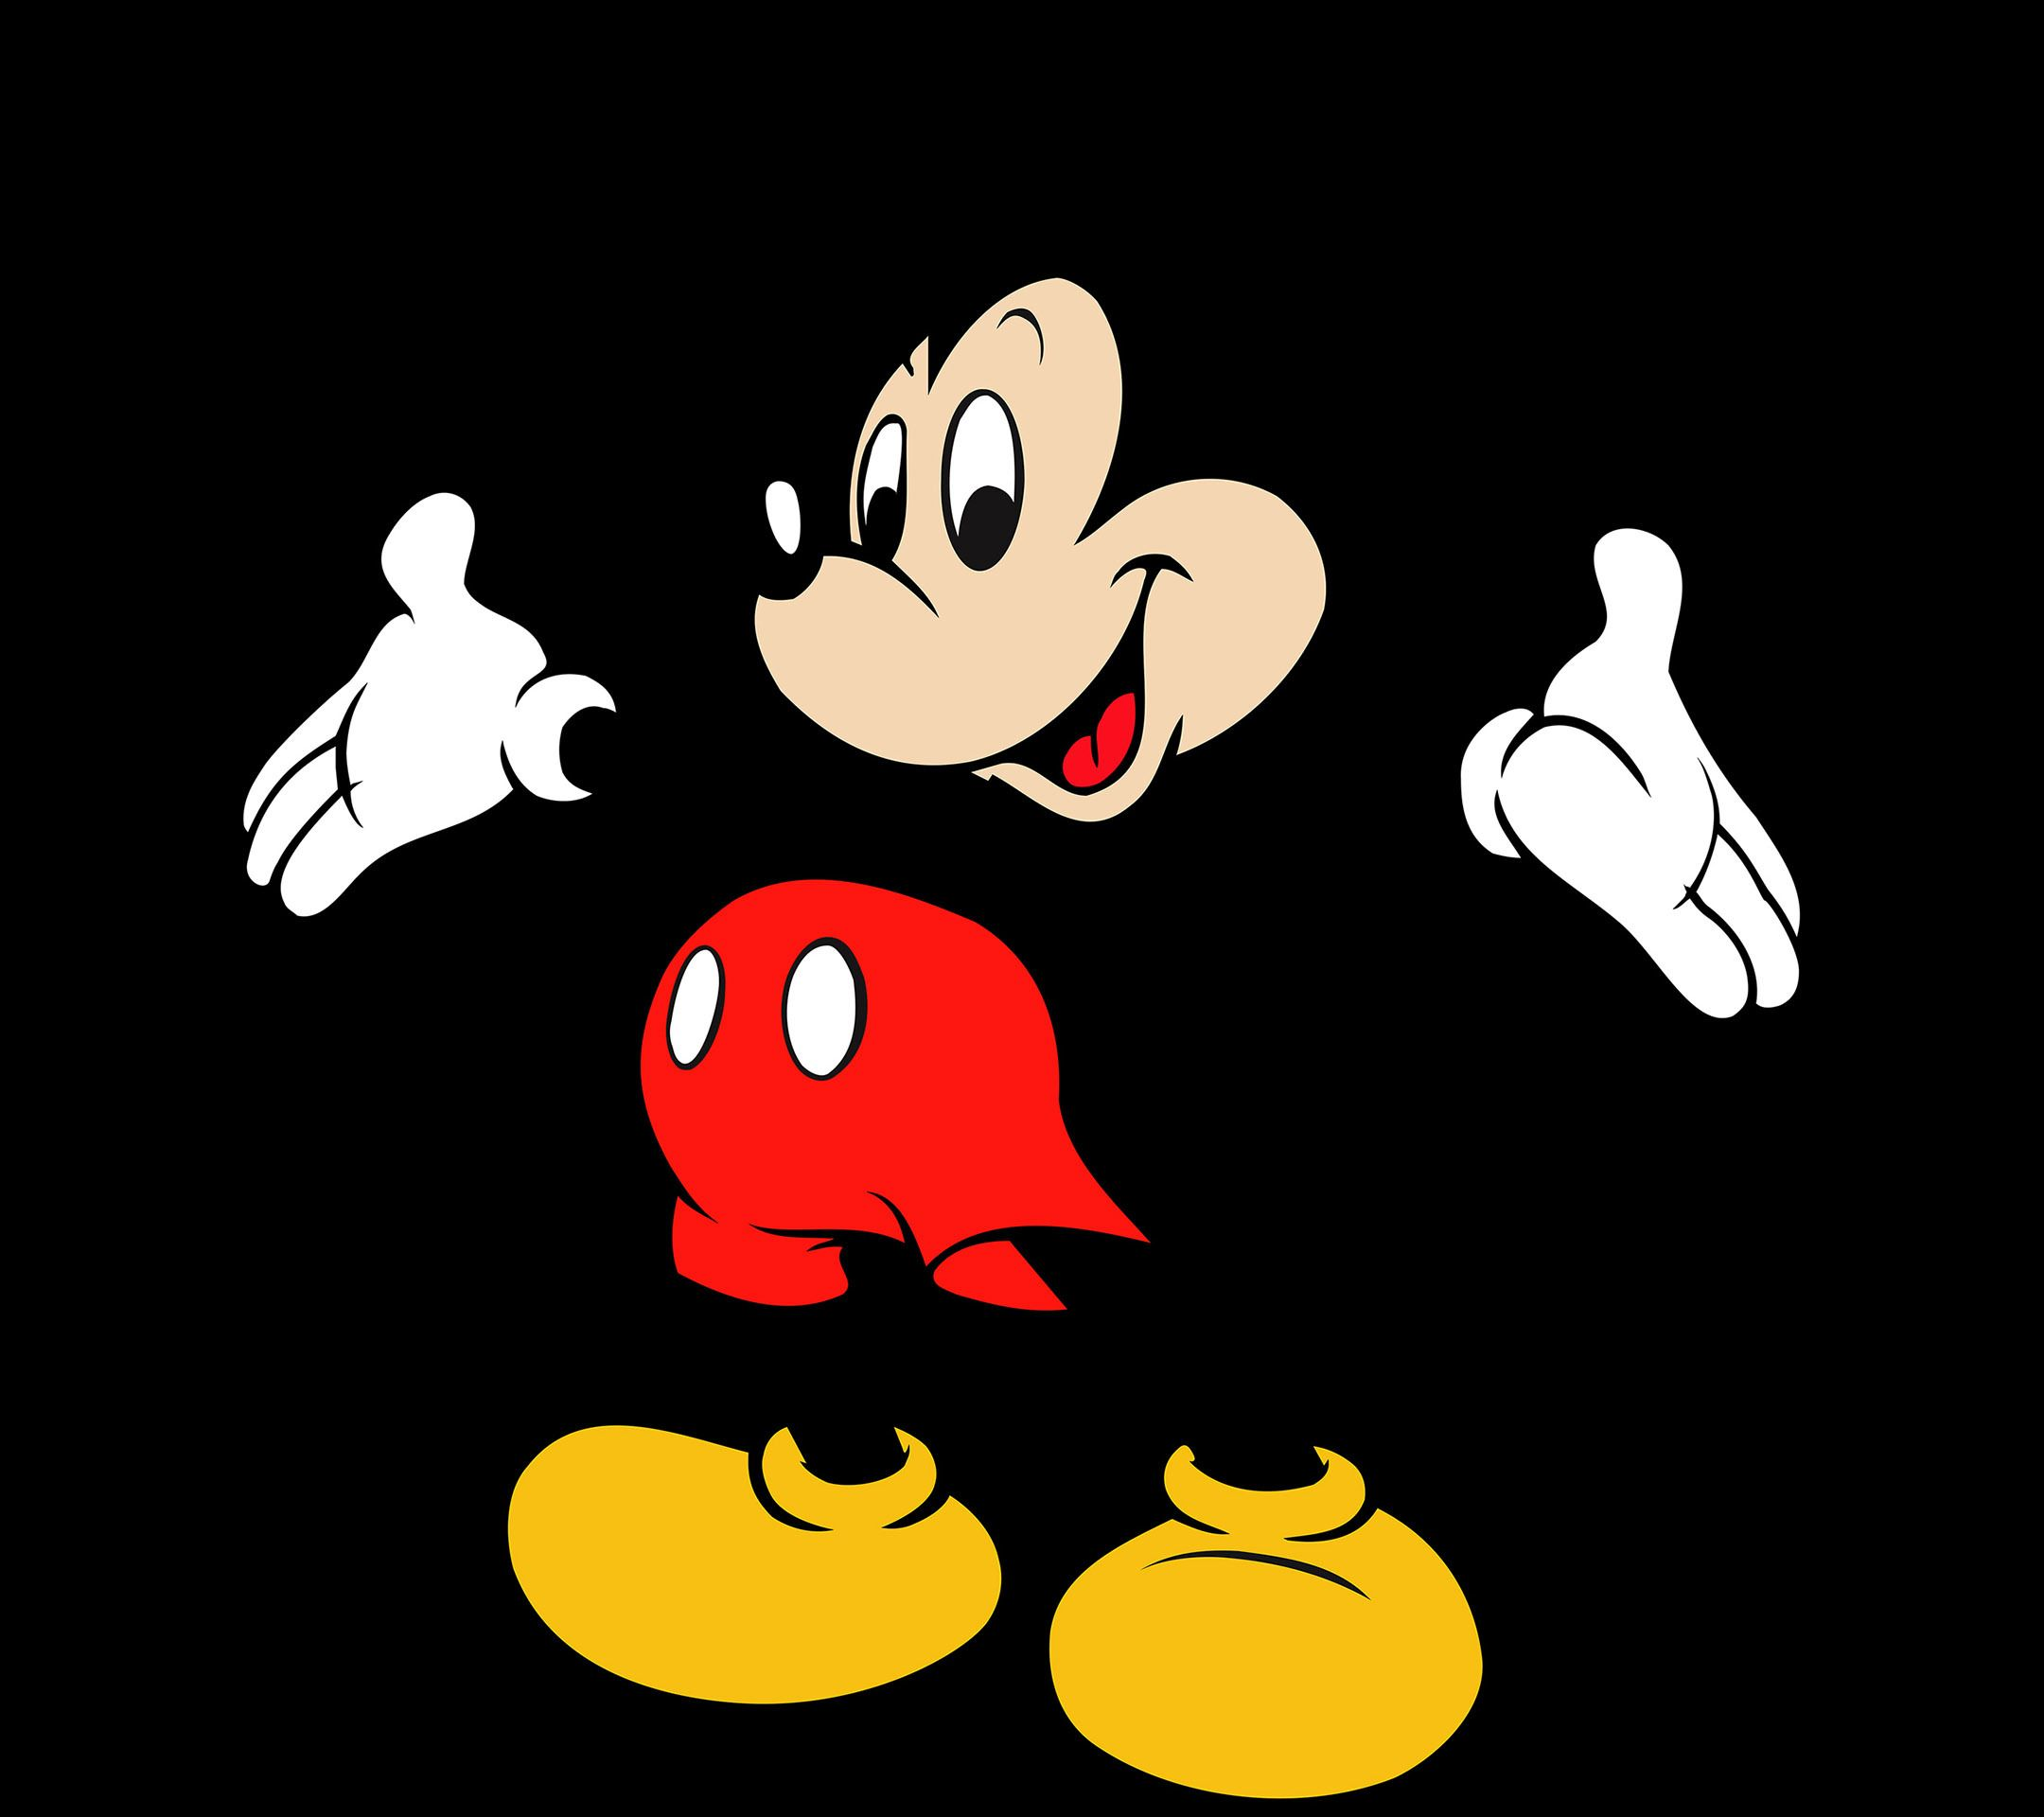 Download Free Mickey Mouse Mobile Mobile Phone Wallpaper Mickey Mouse Wallpaper Mickey Mouse Wallpaper Iphone Mickey Mouse Art